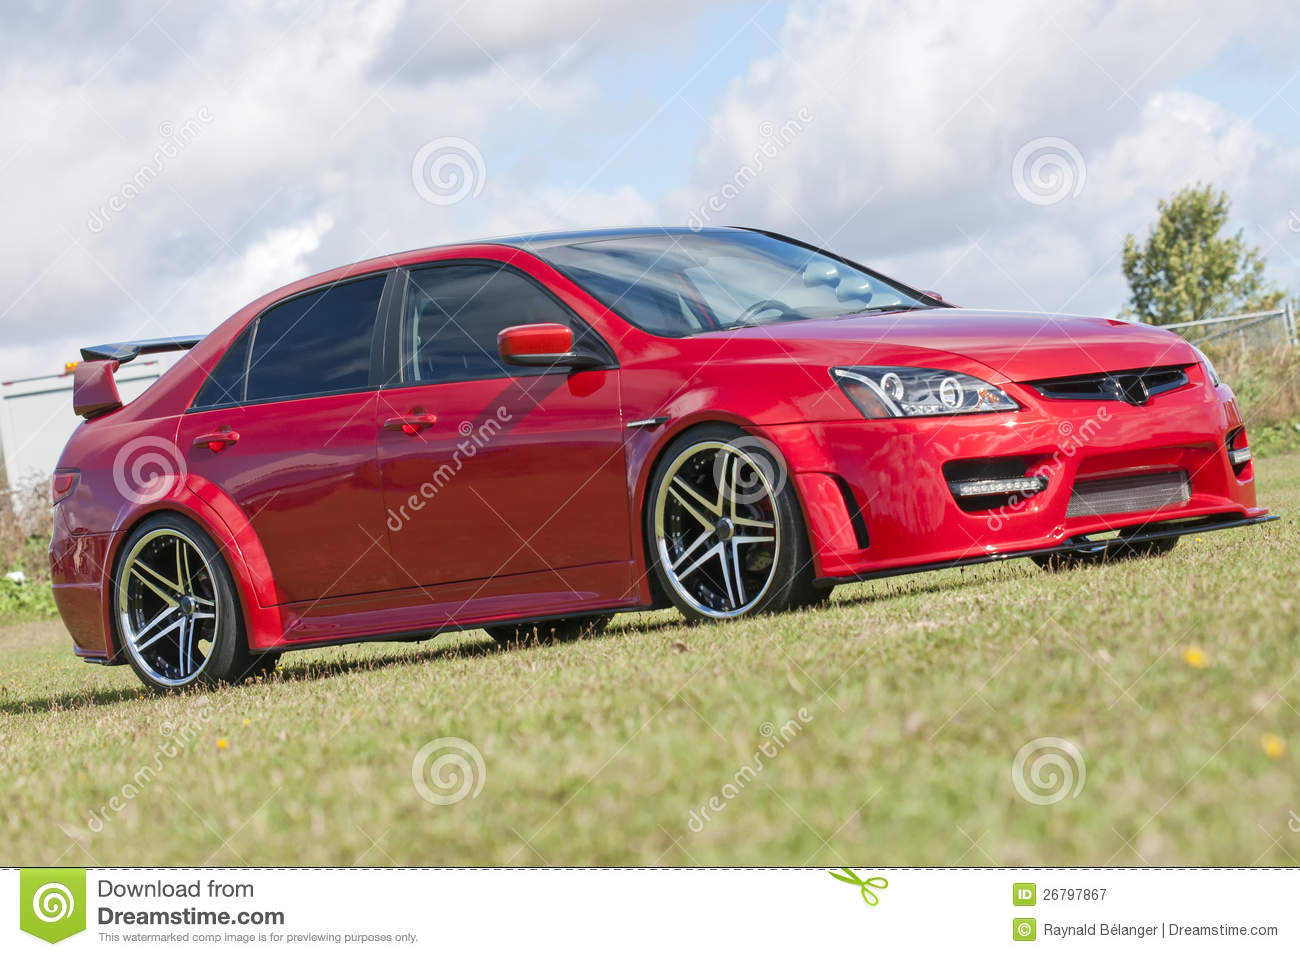 Honda Civic - rojo